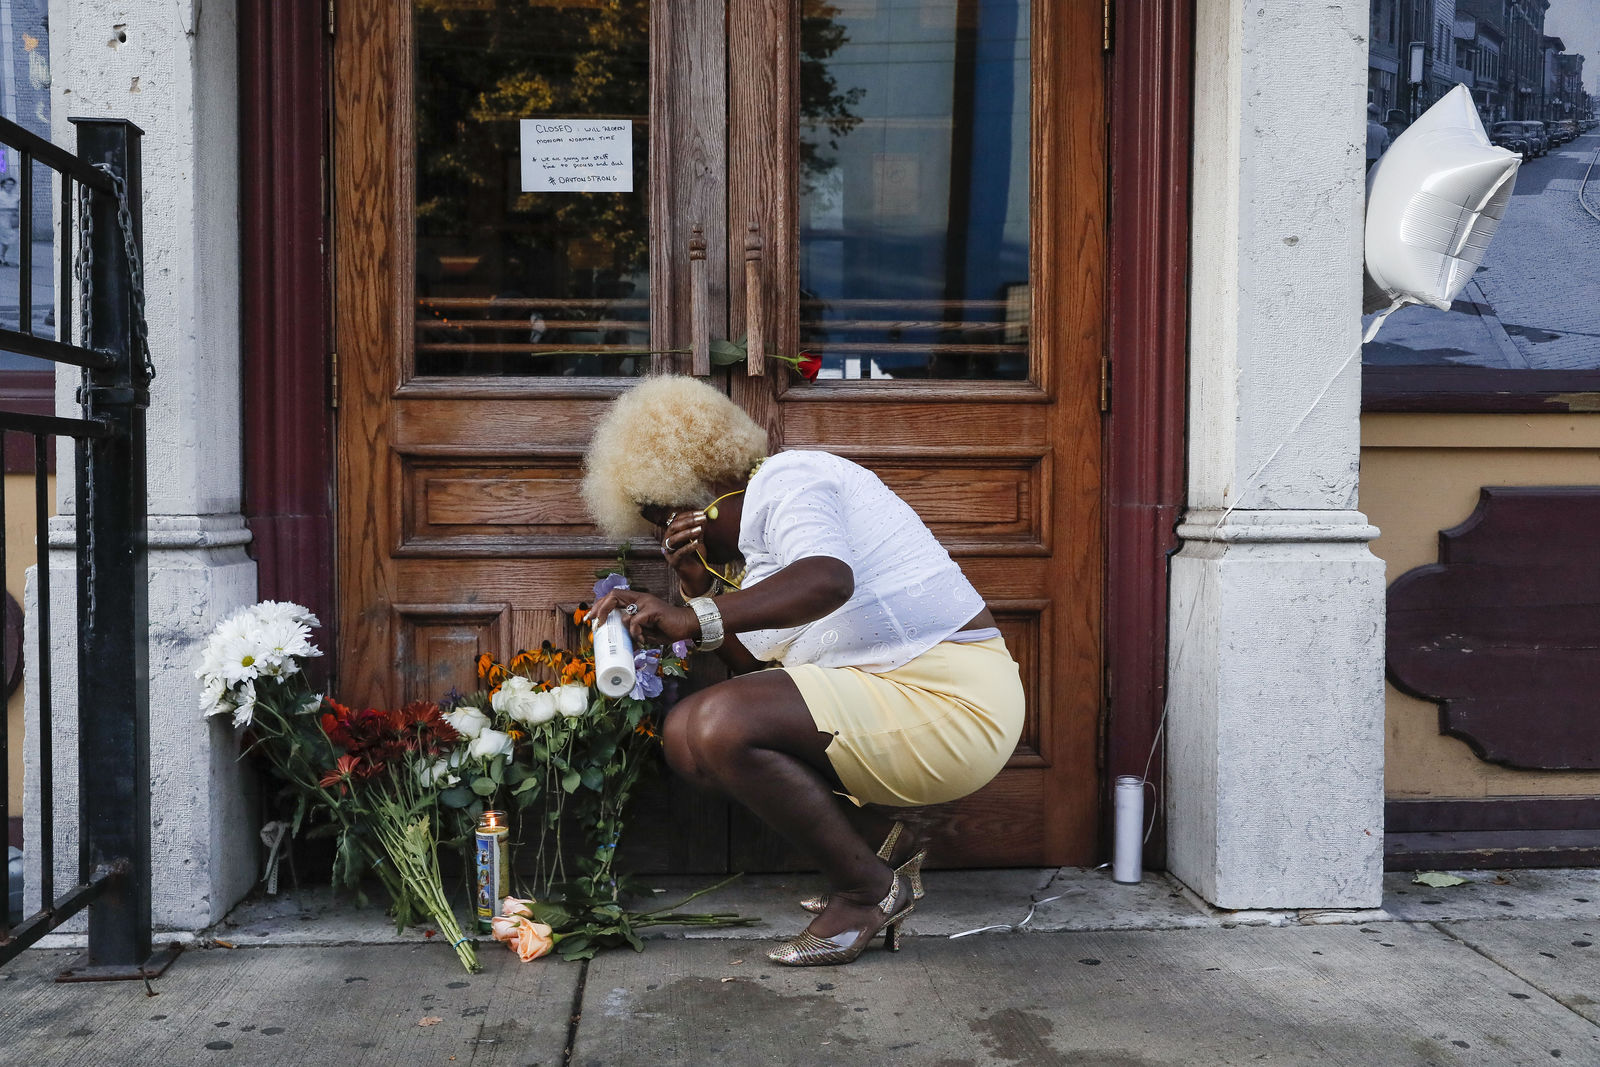 Mourners place flowers and candles at the front of Ned Peppers bar while they gather at the scene of a mass shooting before a prayer vigil, Sunday, Aug. 4, 2019, in Dayton, Ohio. Multiple people in Ohio have been killed in the second mass shooting in the U.S. in less than 24 hours, and the suspected shooter is also deceased, police said. (AP Photo/John Minchillo)